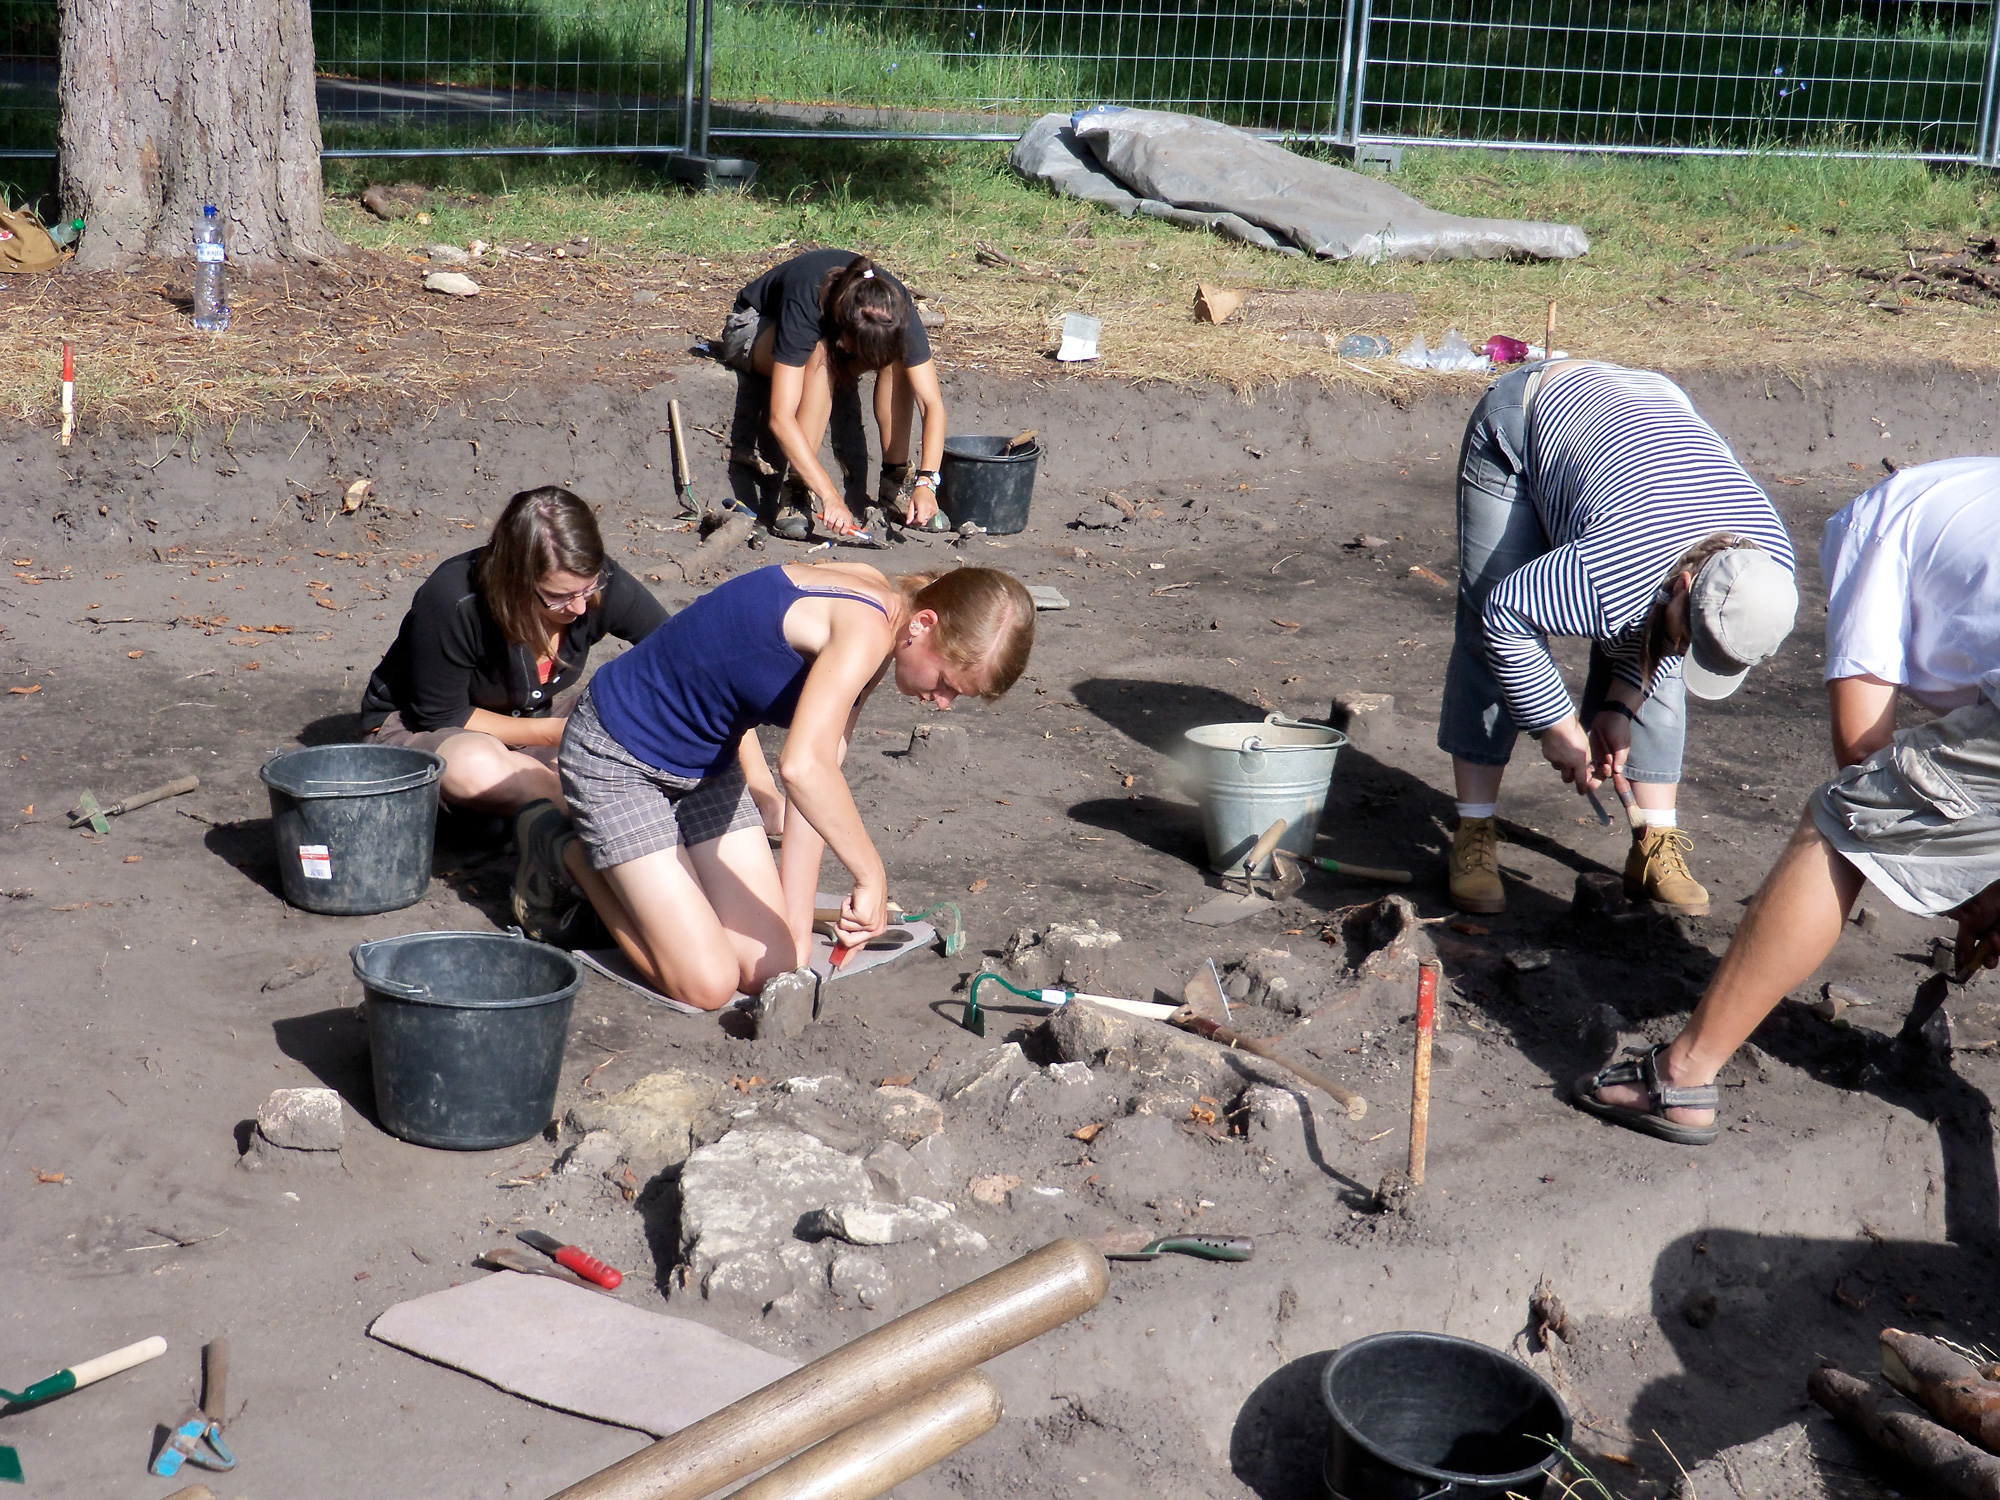 This image captures students digging at an archeological site.